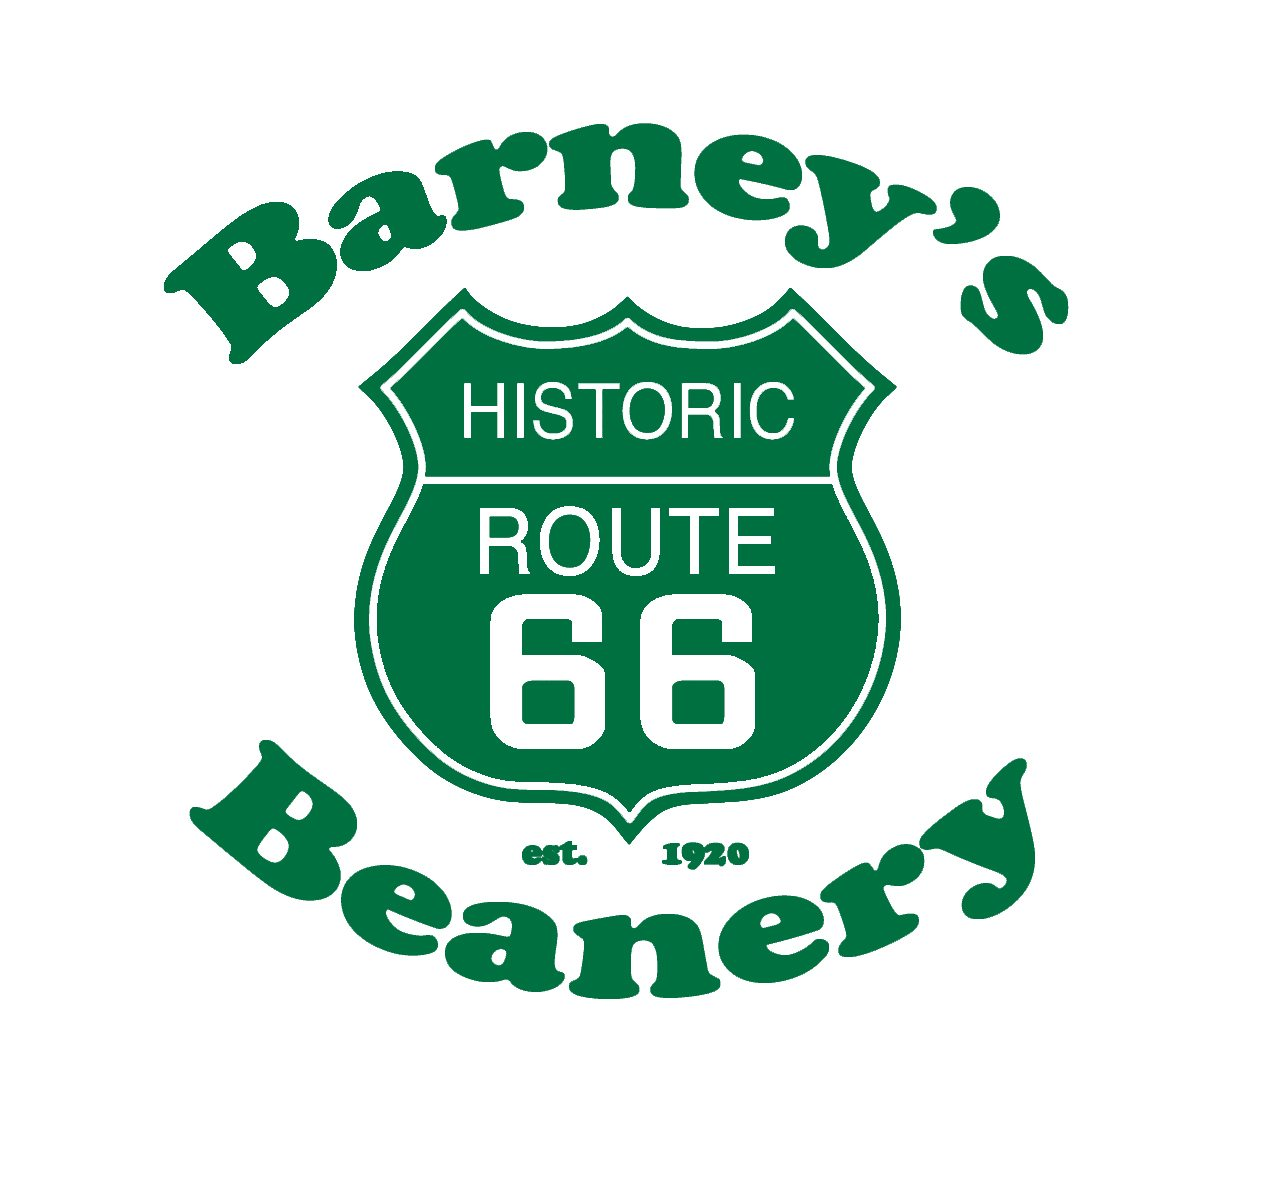 Barney's Logo in Green